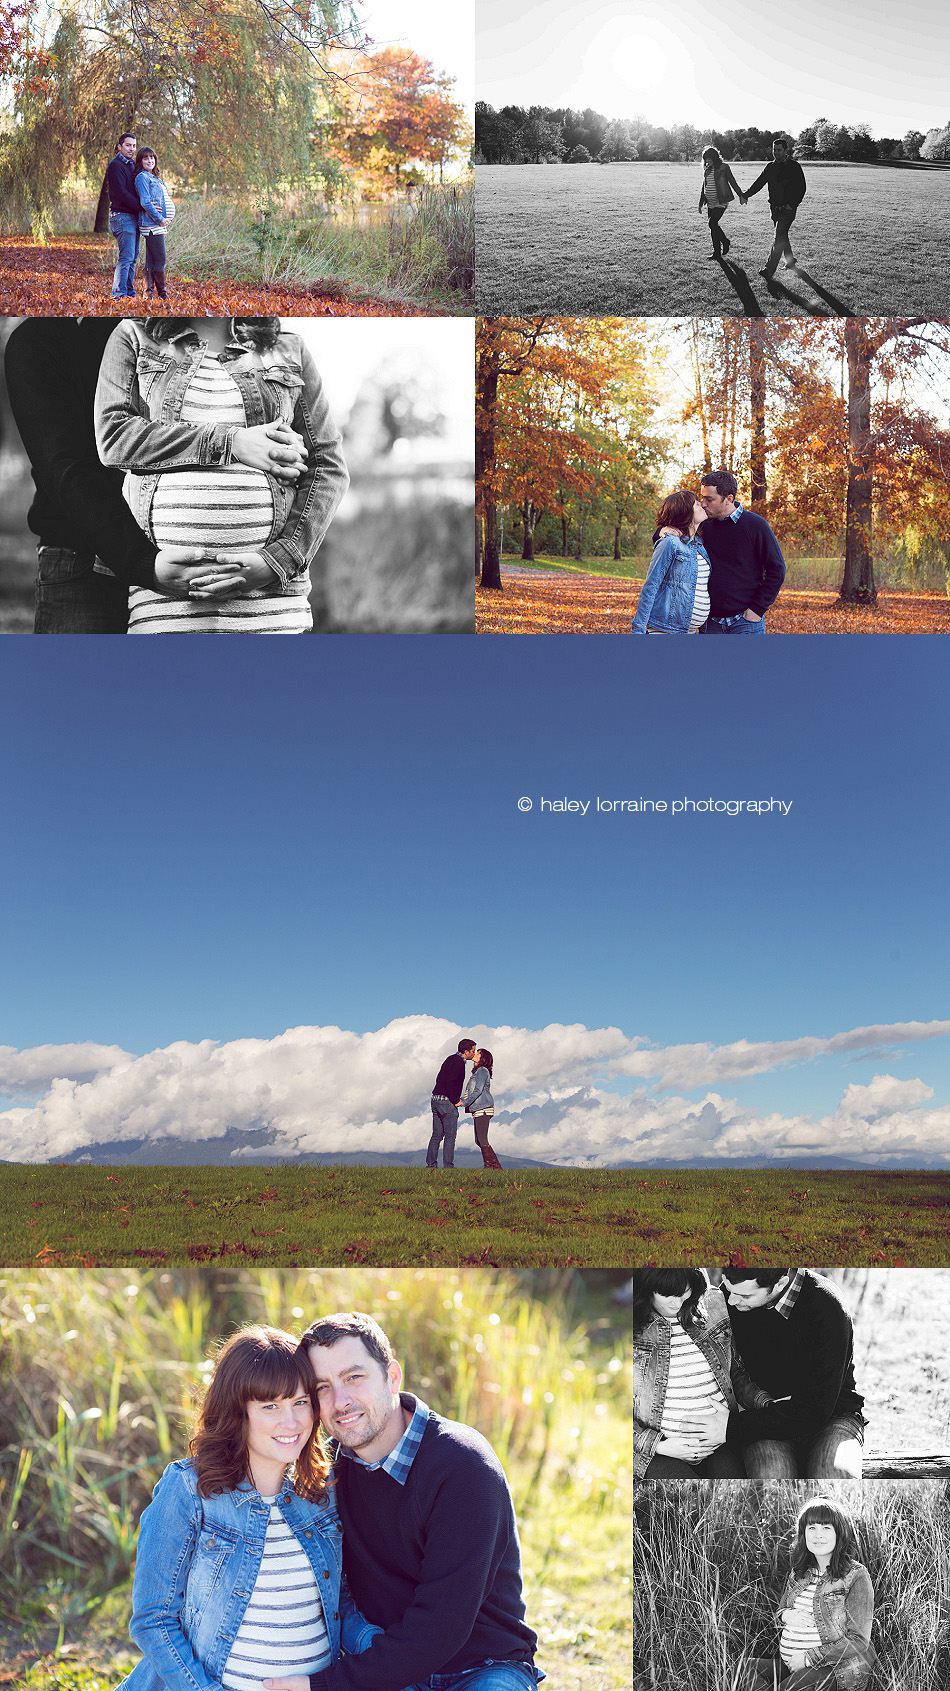 Maternity and Newborn Photography Vancouver